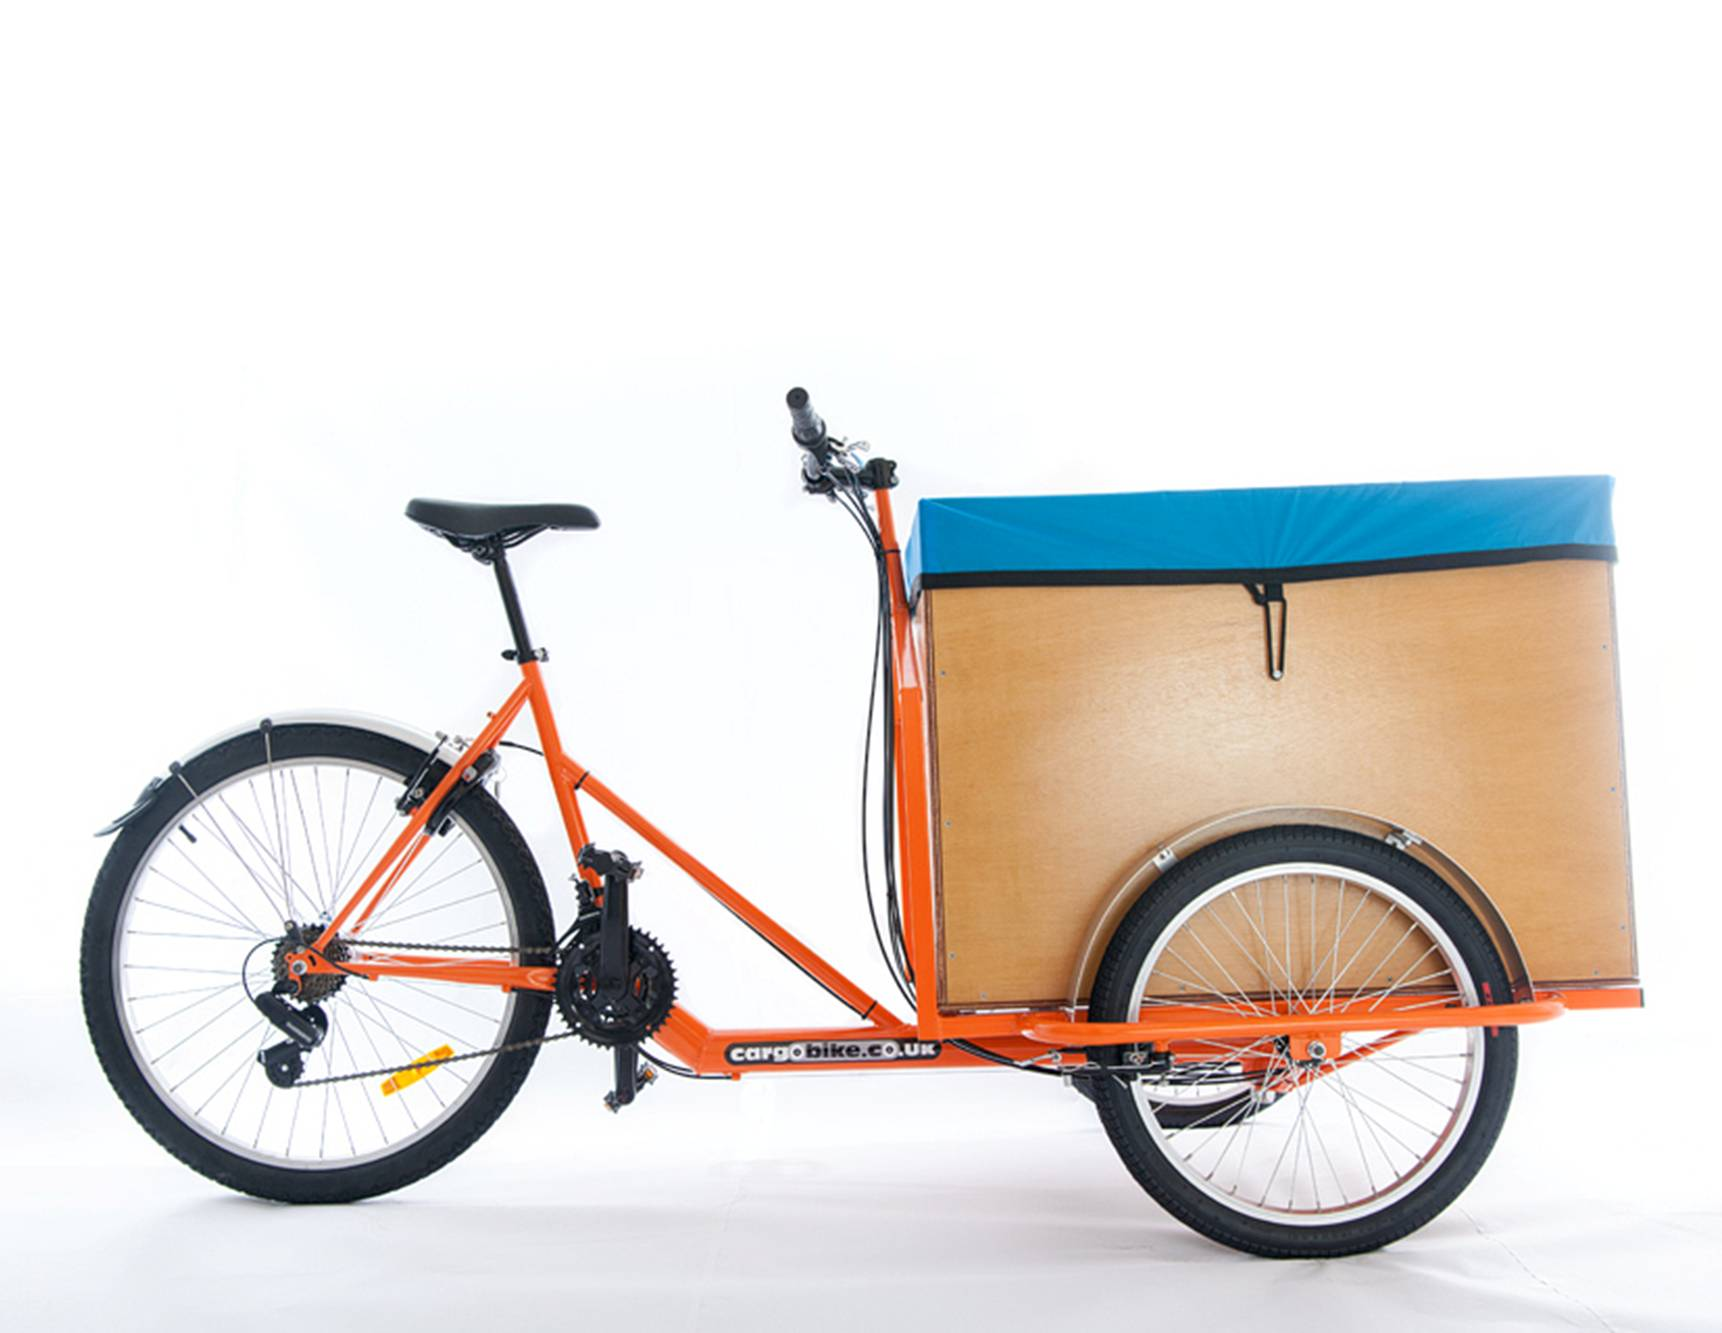 Tamar Cargo Trike | The Cargo Bike Company